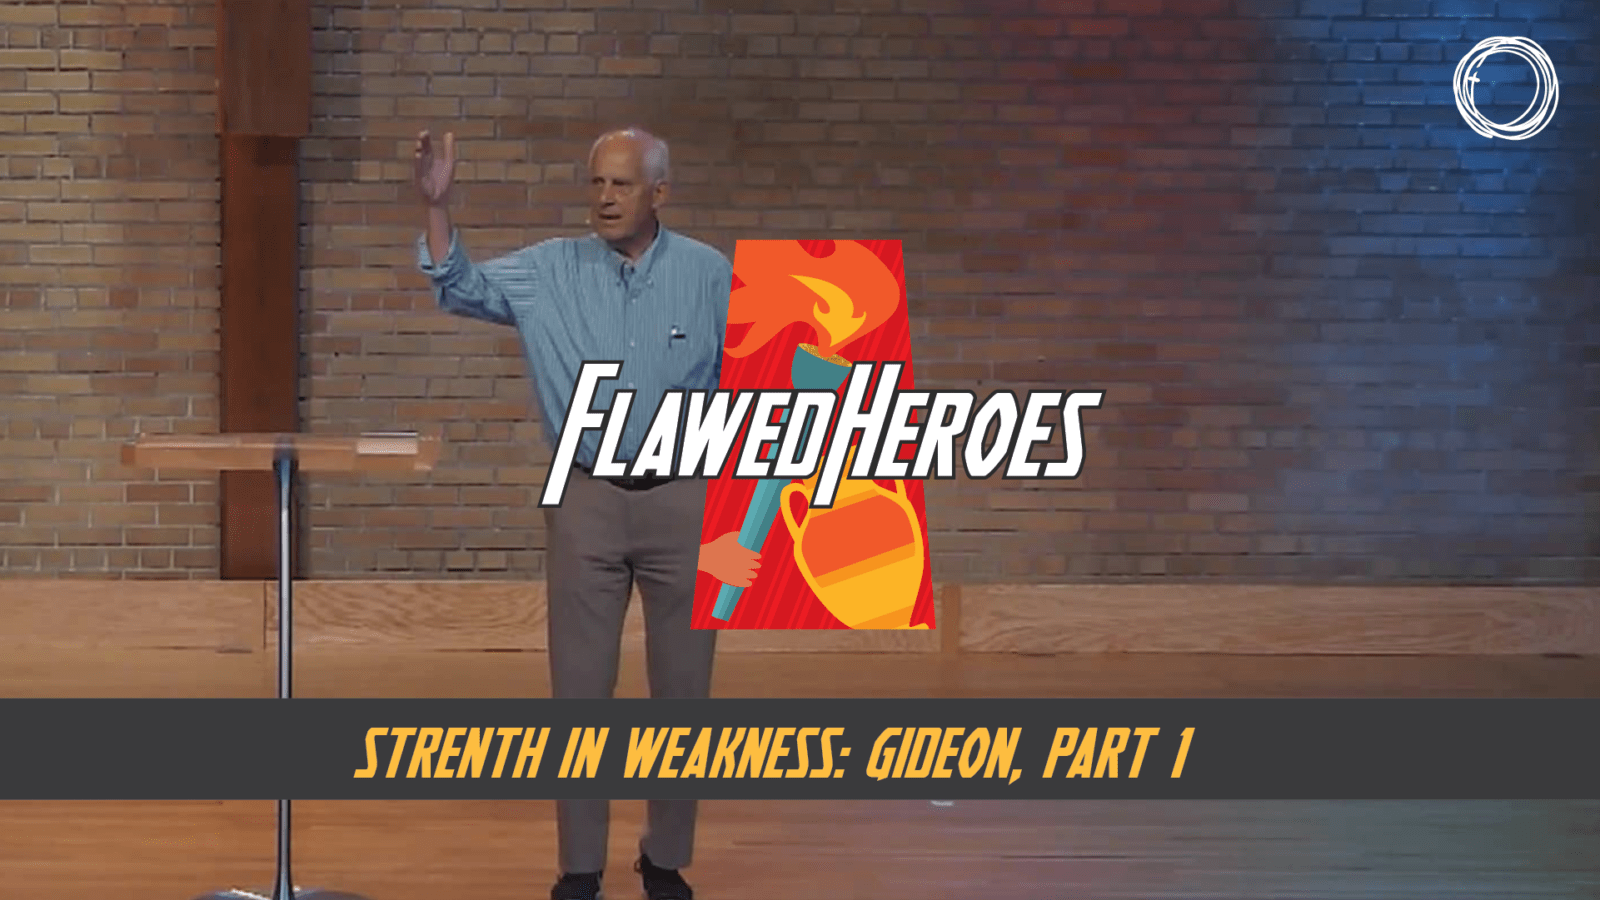 Strength in Weakness: Gideon, Part 1